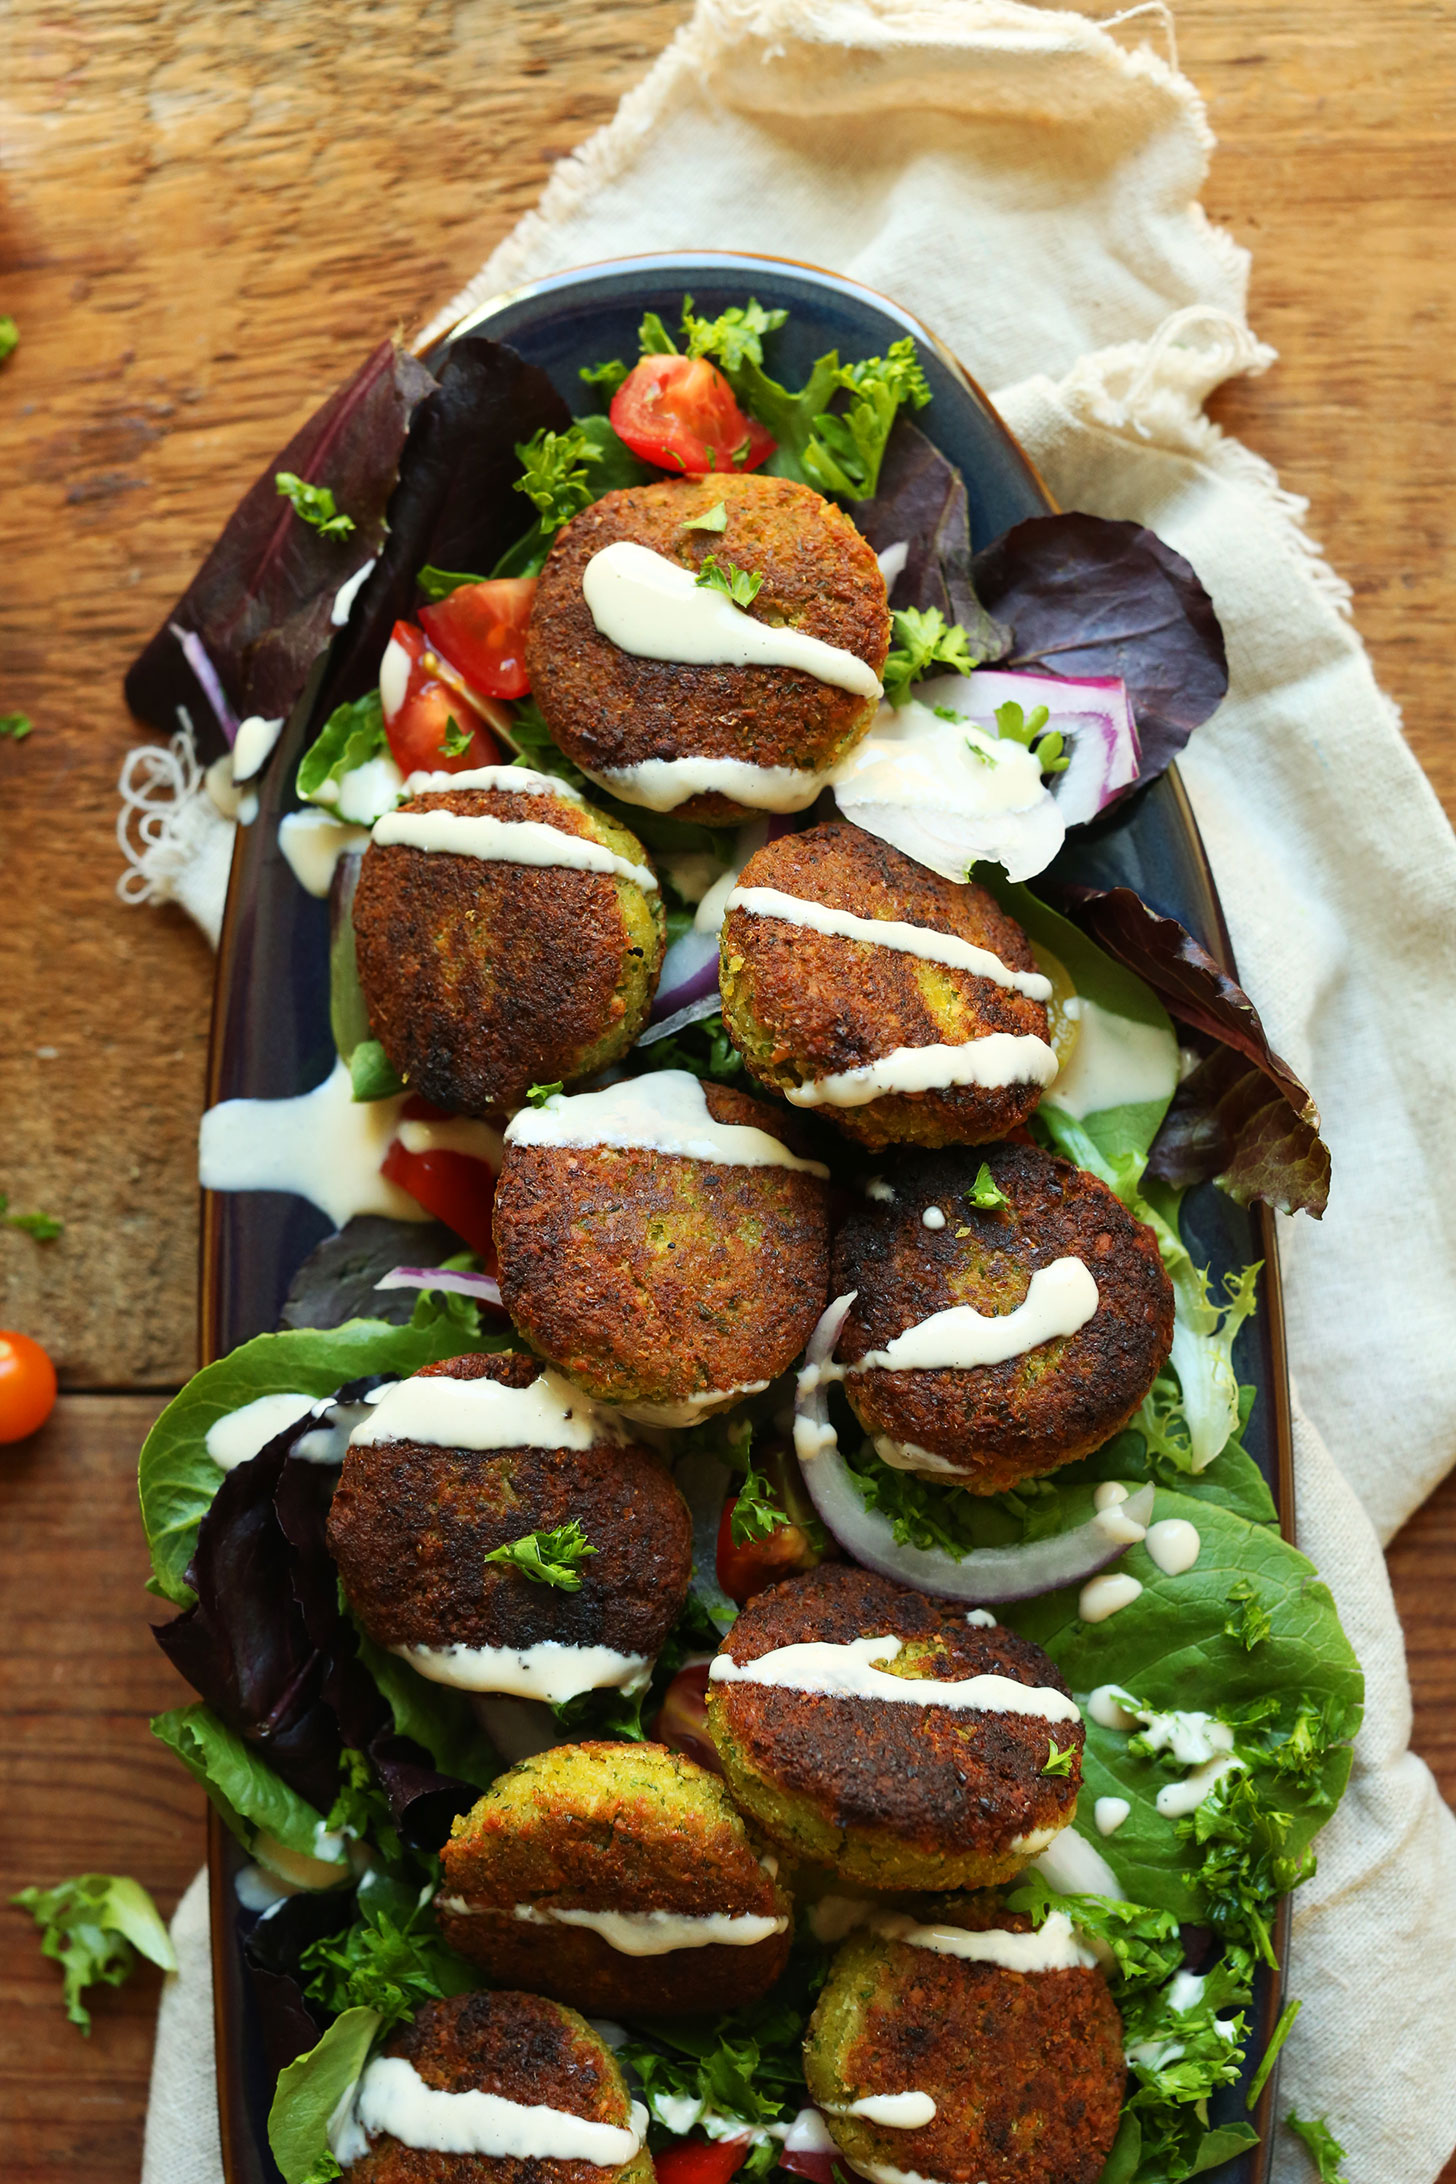 Crispy gluten-free Vegan Falafels atop lettuce for a protein-packed plant-based meal